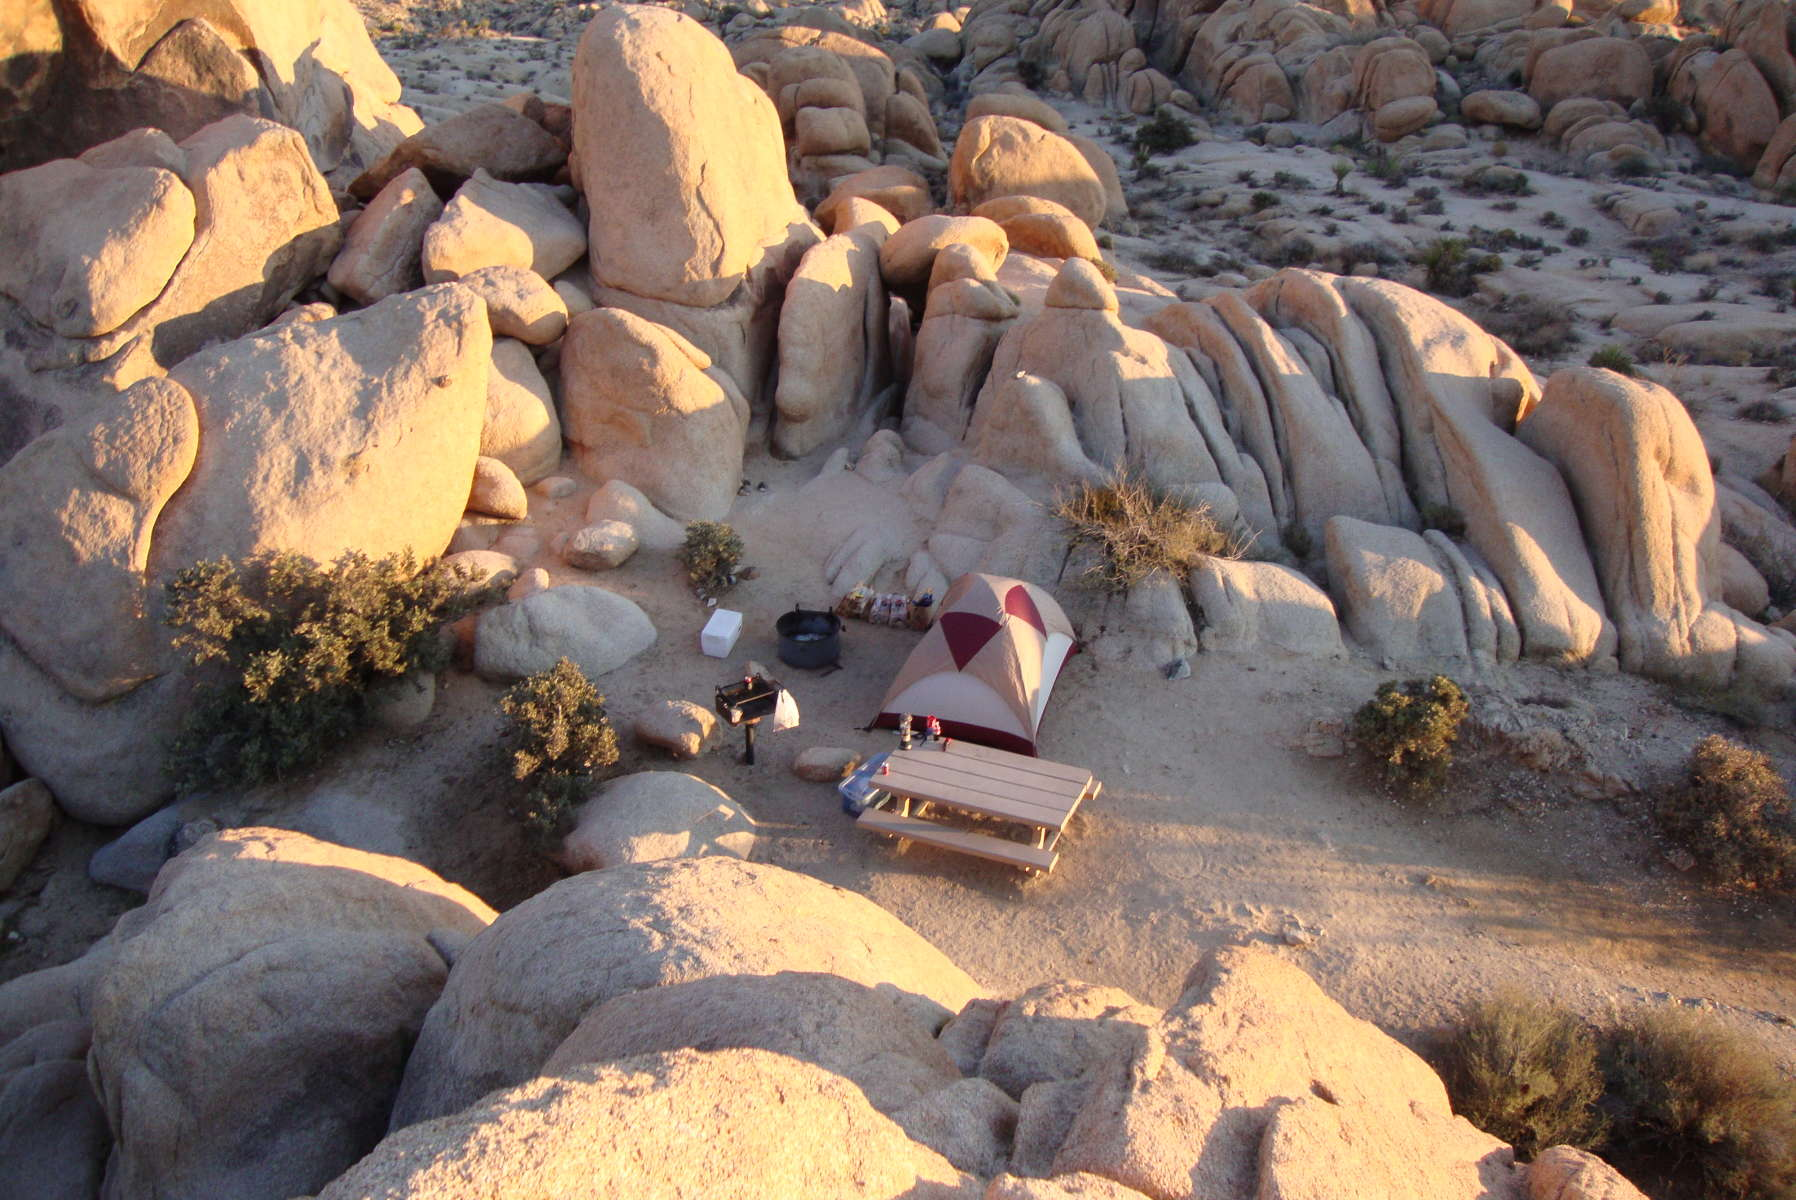 white tank campground, joshua tree, ca: 5 hipcamper reviews and 40